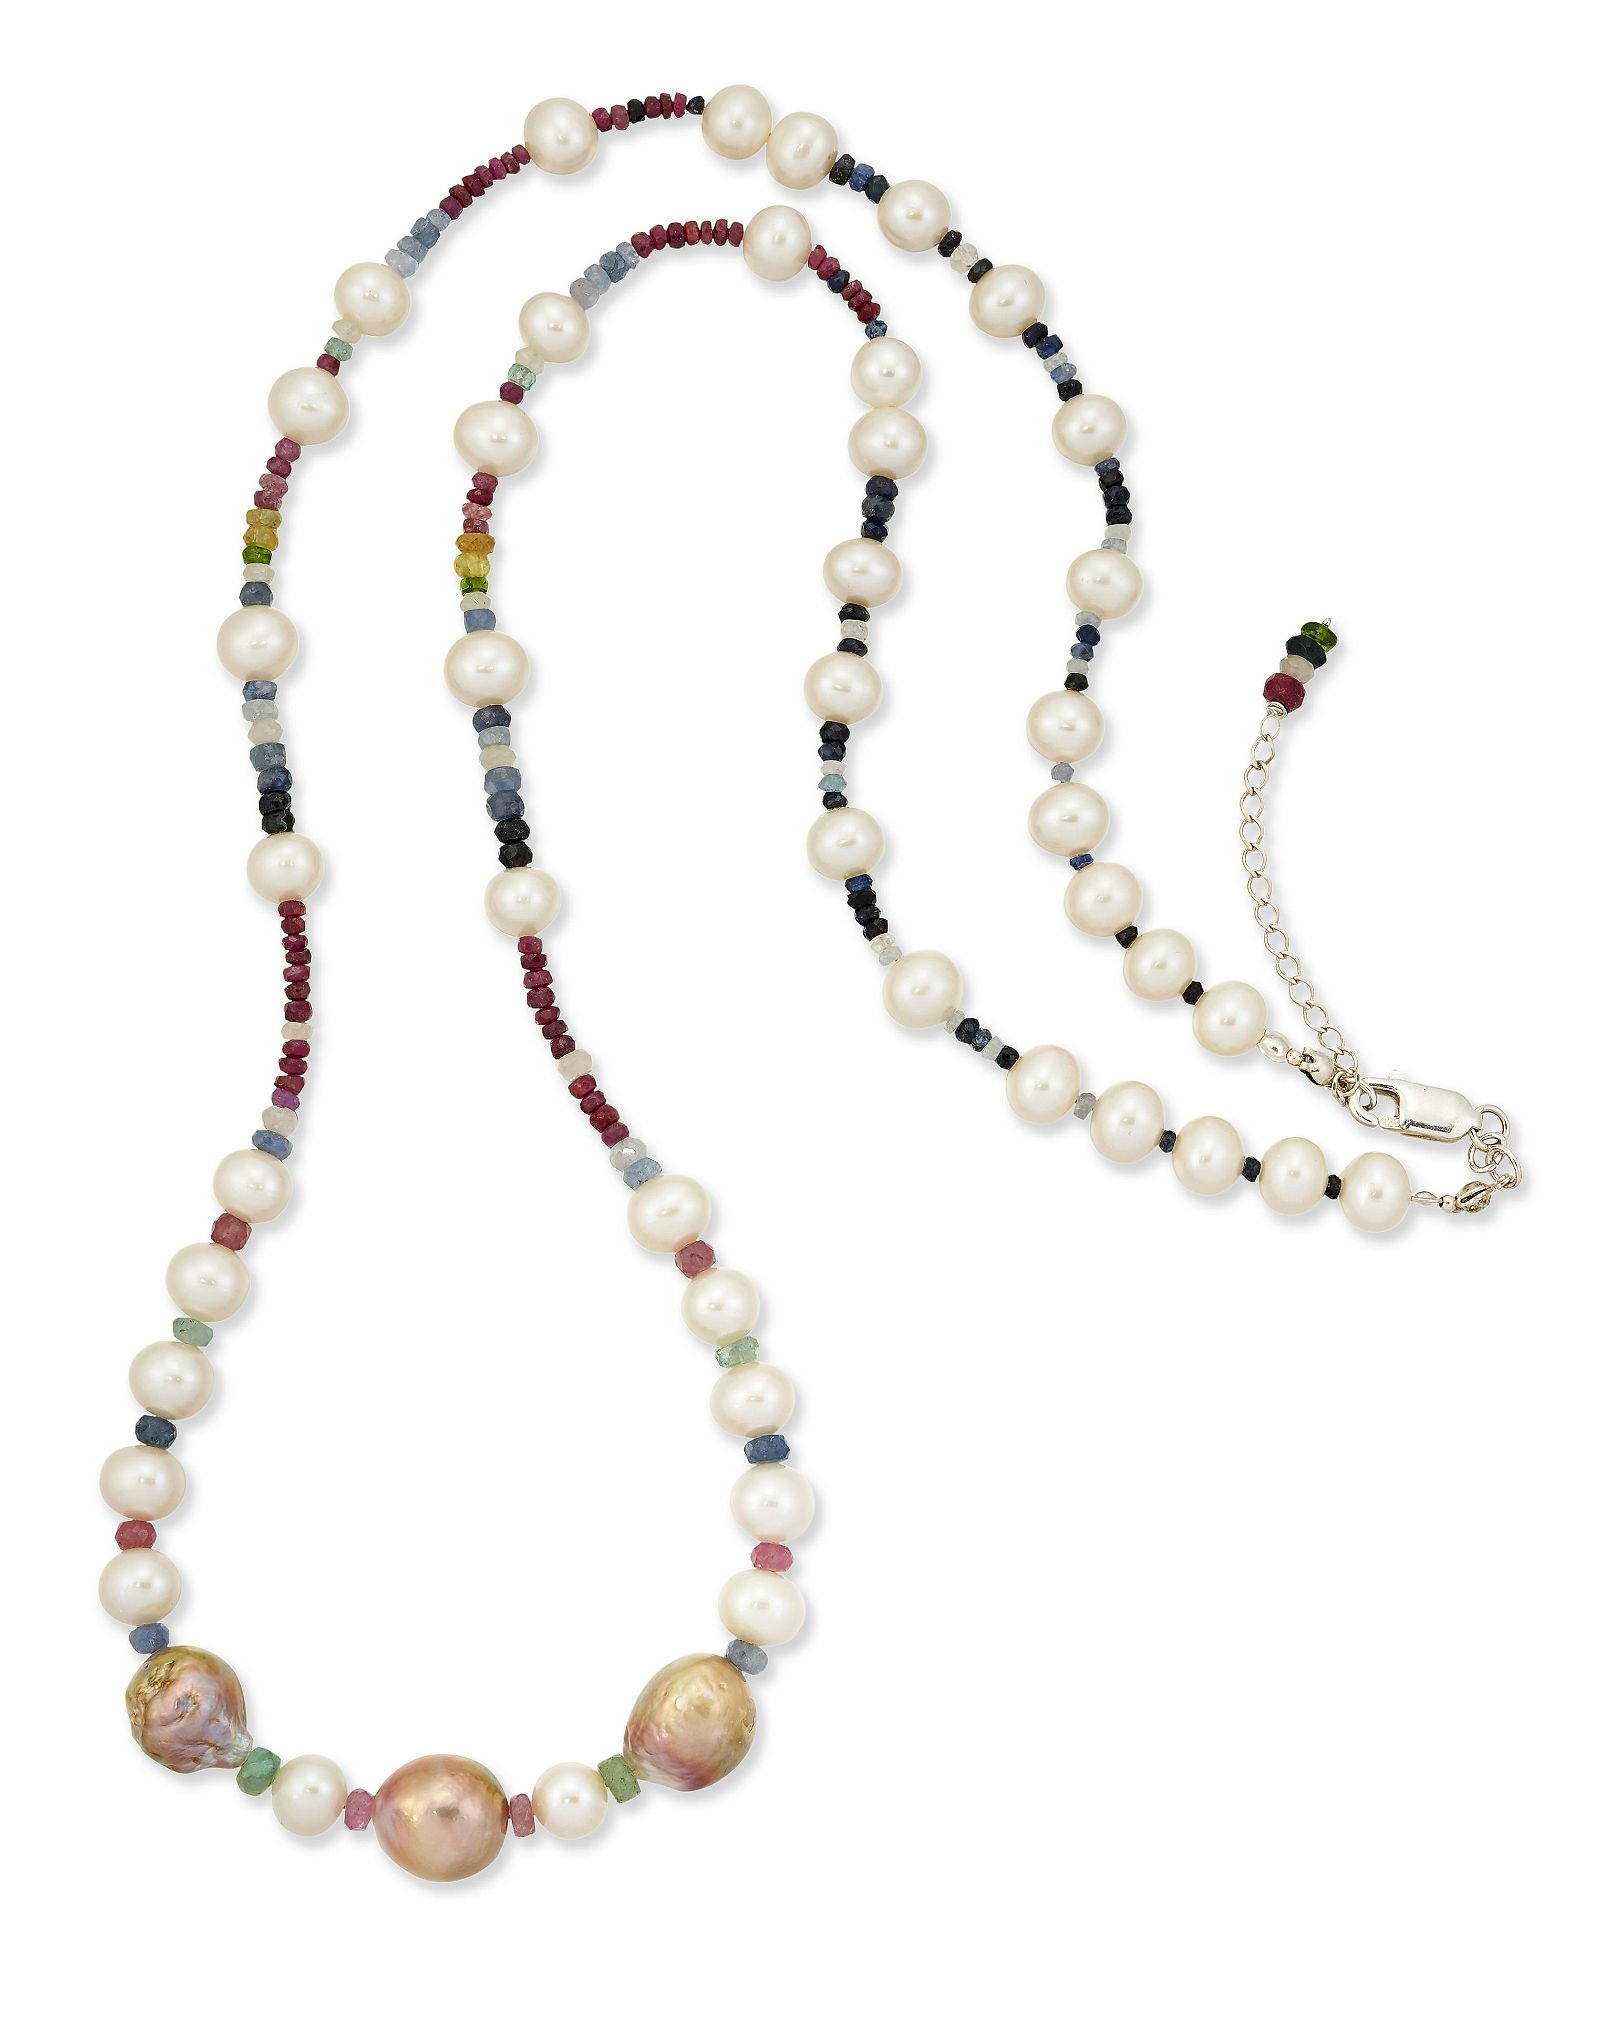 A CULTURED PEARL AND GEMSTONE BEAD NECKLACE, large